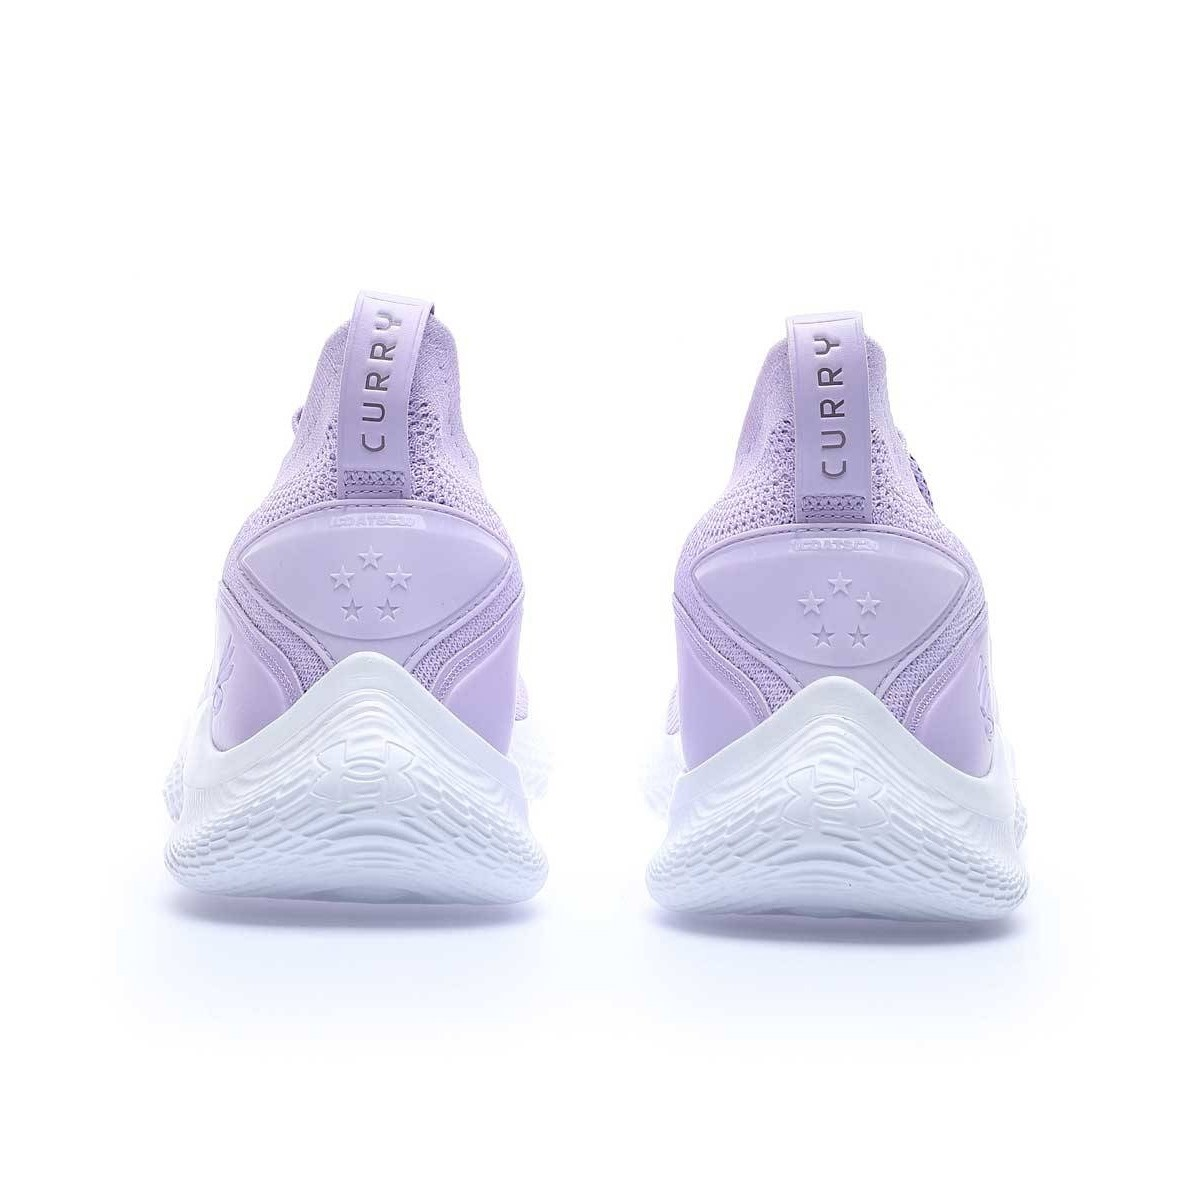 Under Armour Curry 8 'IWD'-3024425-500